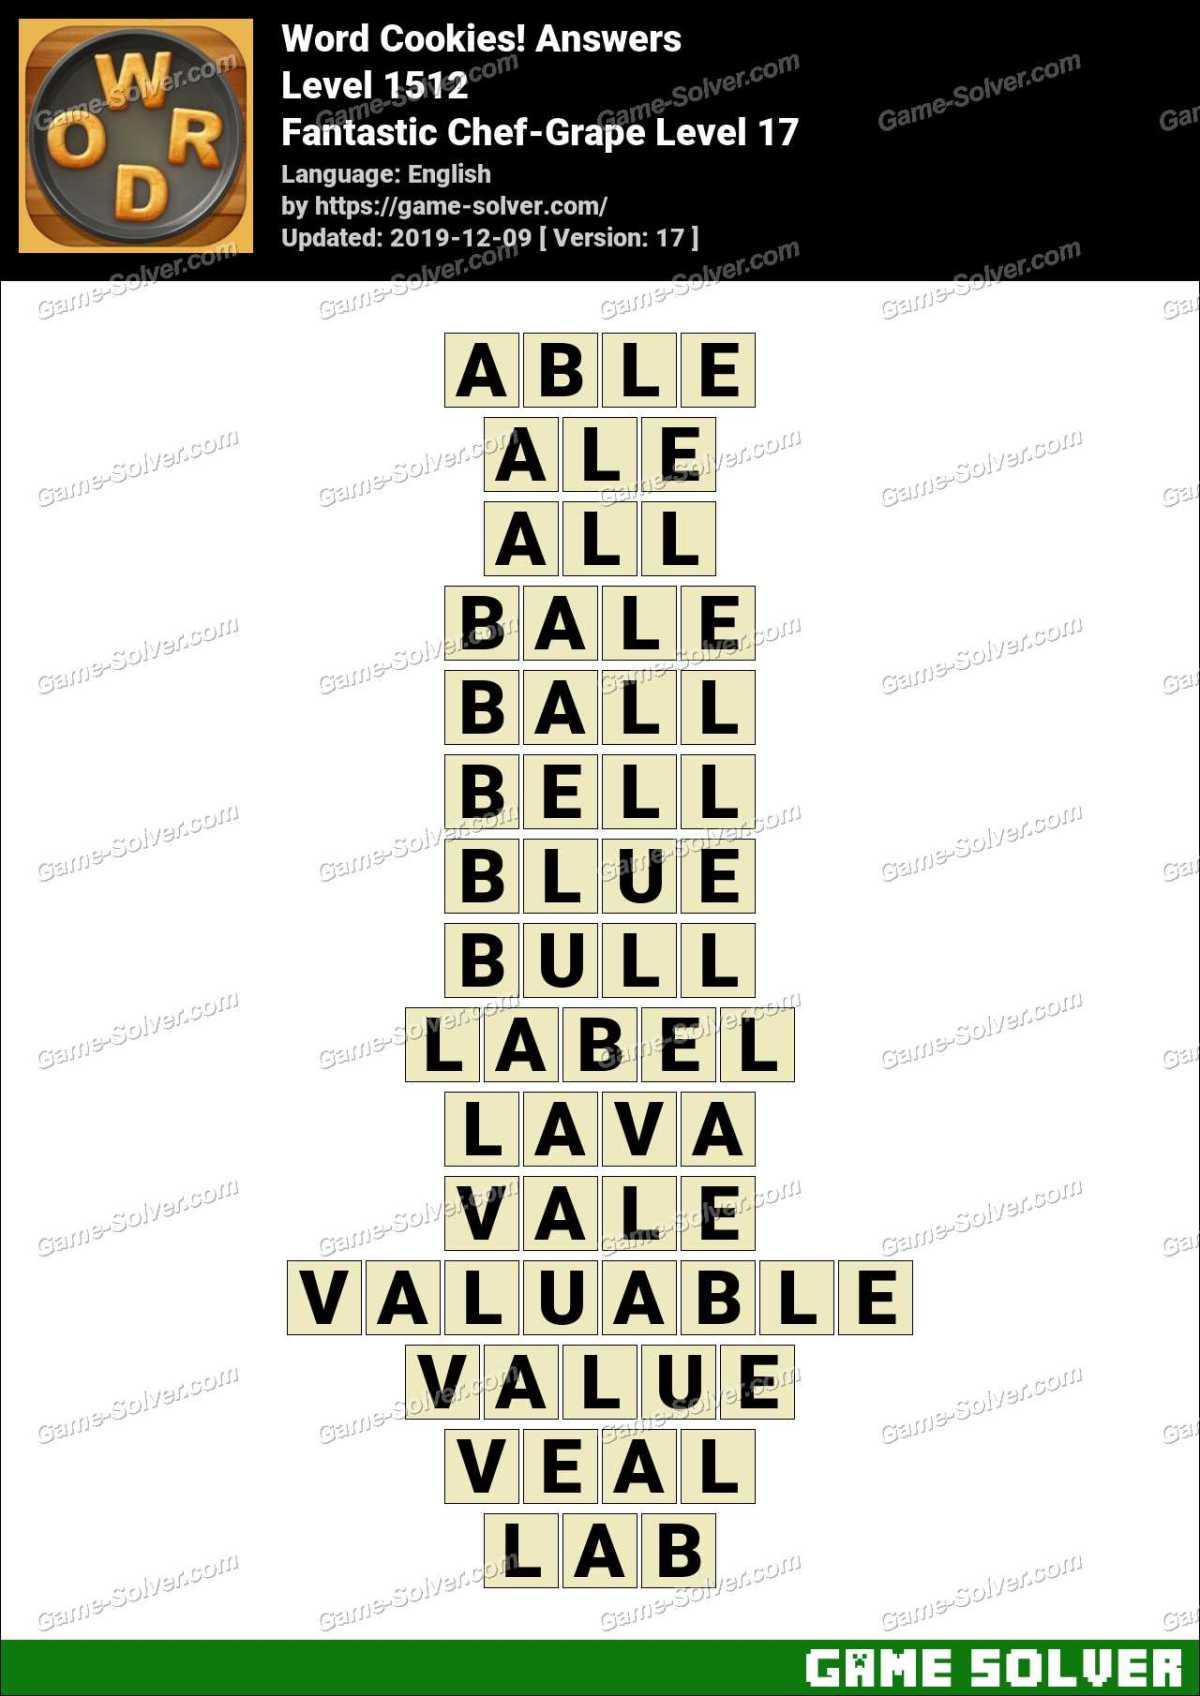 Word Cookies Fantastic Chef-Grape Level 17 Answers